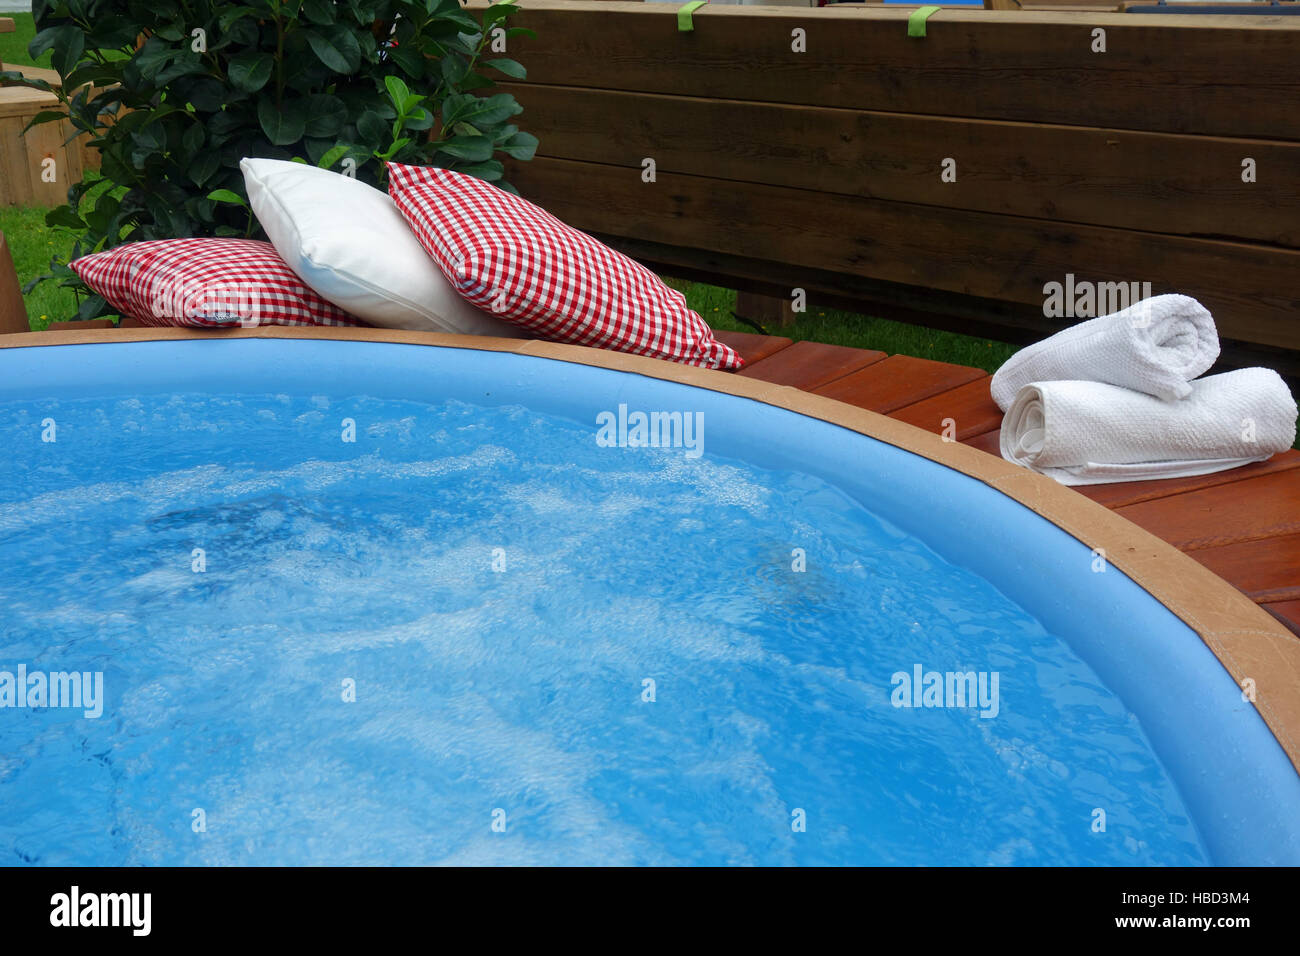 Jacuzzi Pool Pflege Whirlpool Wellness Stock Photo 127522084 Alamy